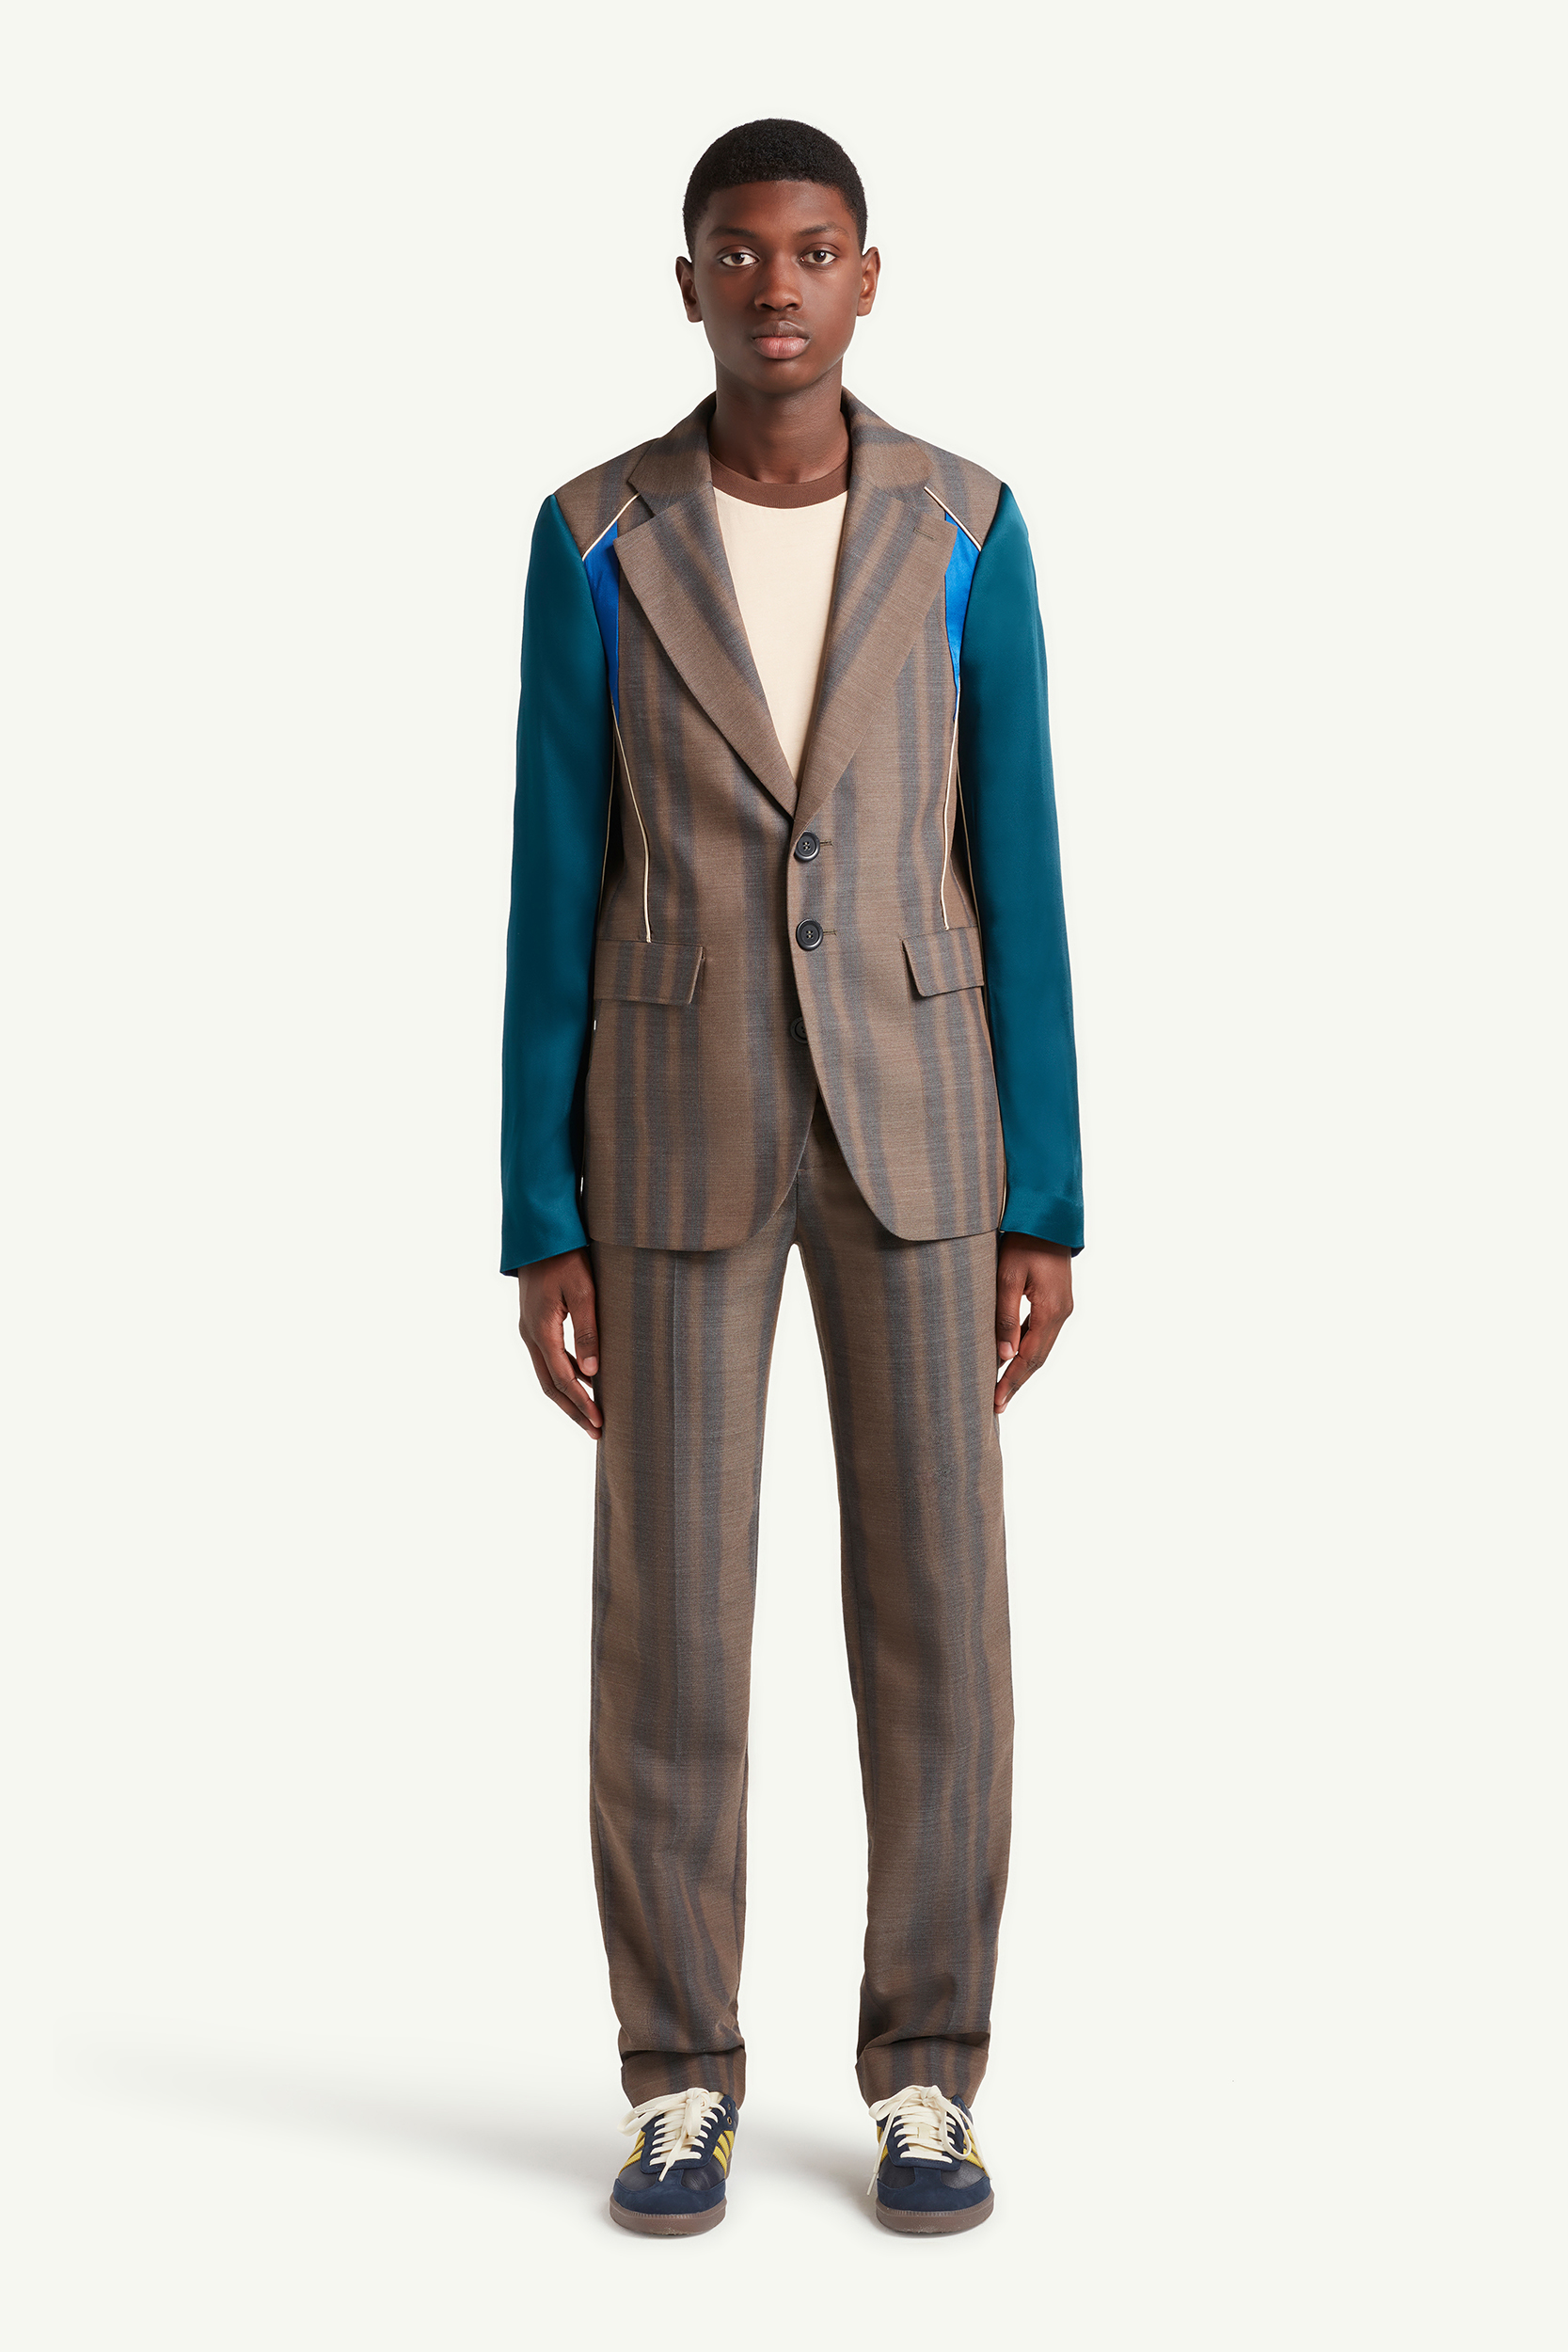 Menswear model wearing light grey, brown lined smart casual suit Wales Bonner | e-Commerce Photography London | LRP